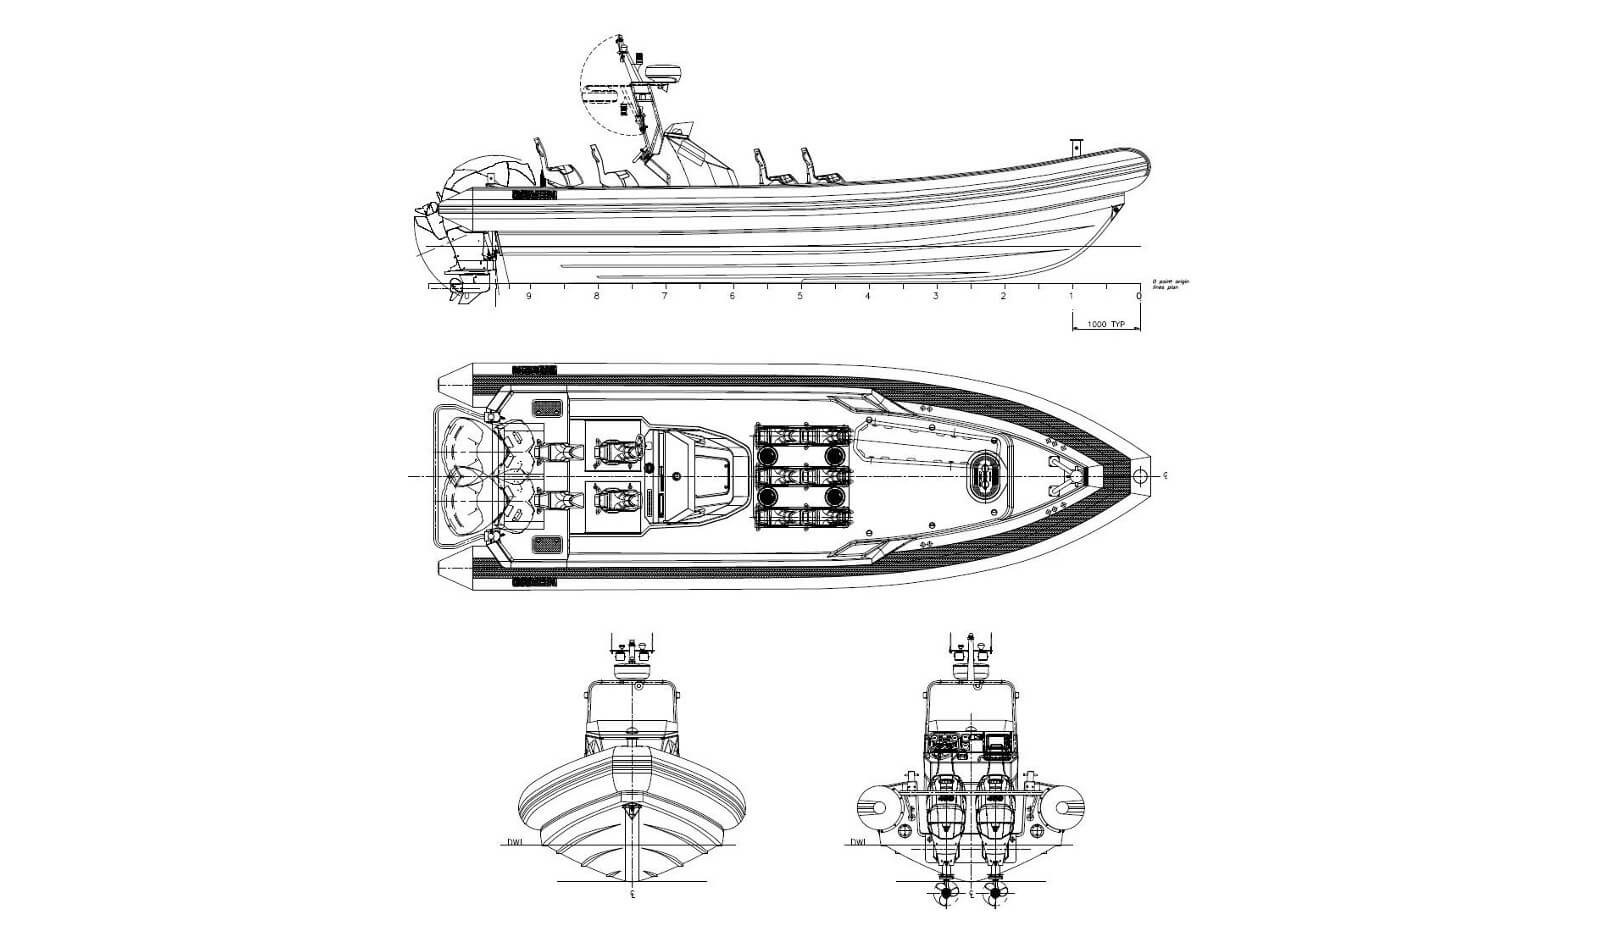 General Arrangement of Damen RHIB 1050 outboard